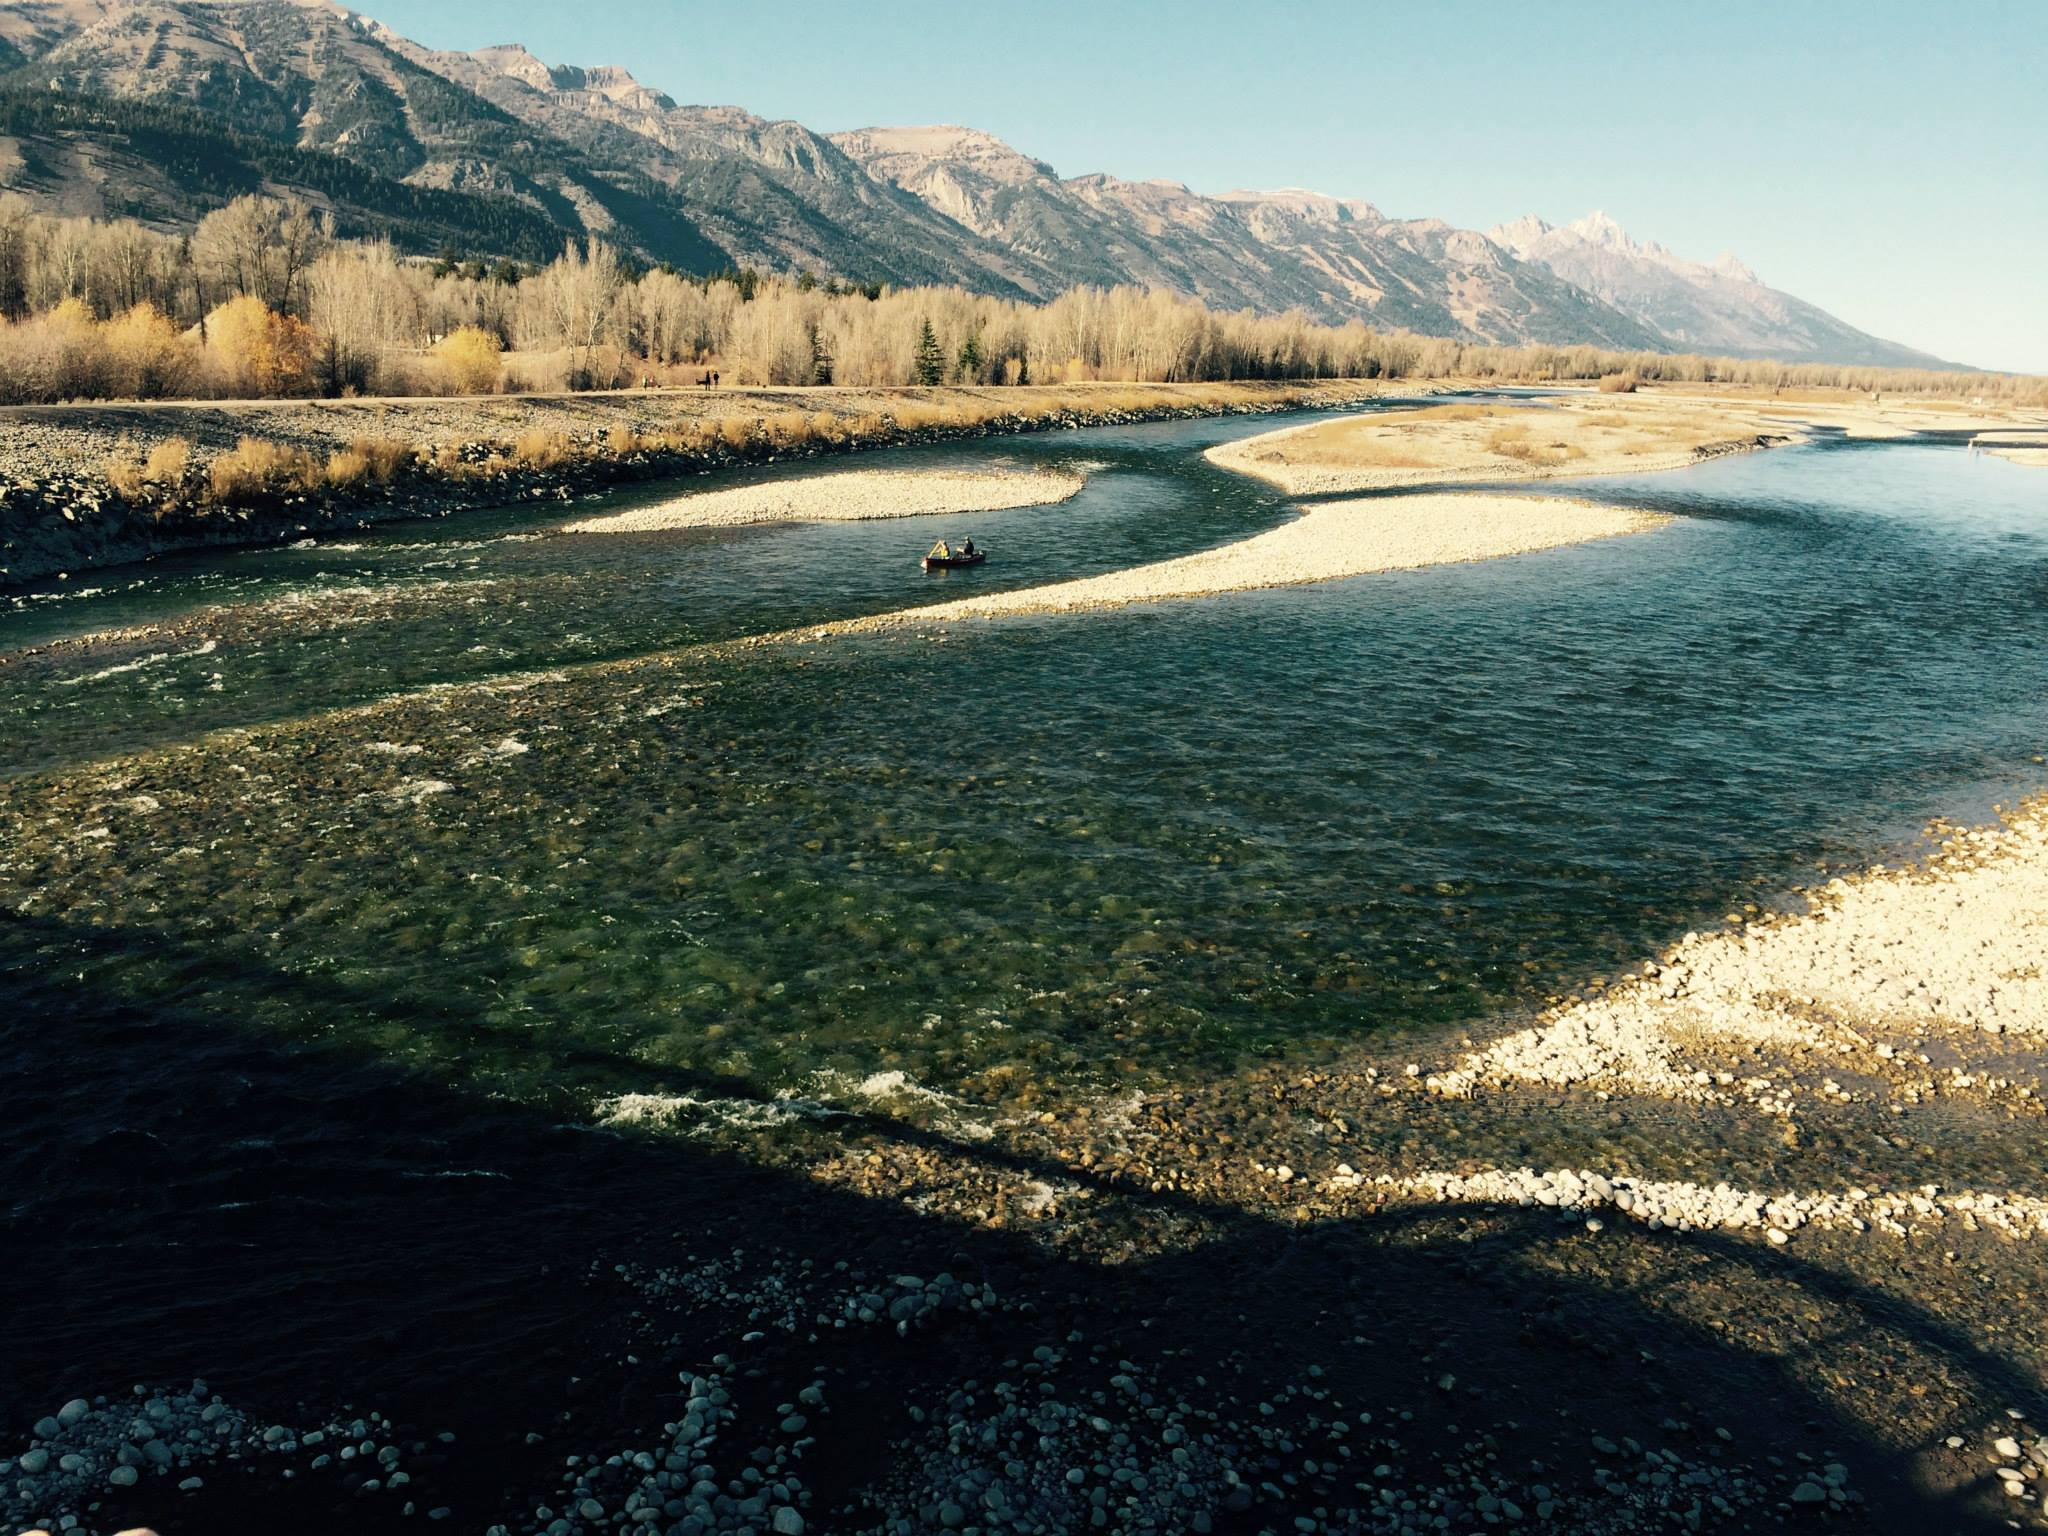 Jackson Hole Brings the Dining to the Table